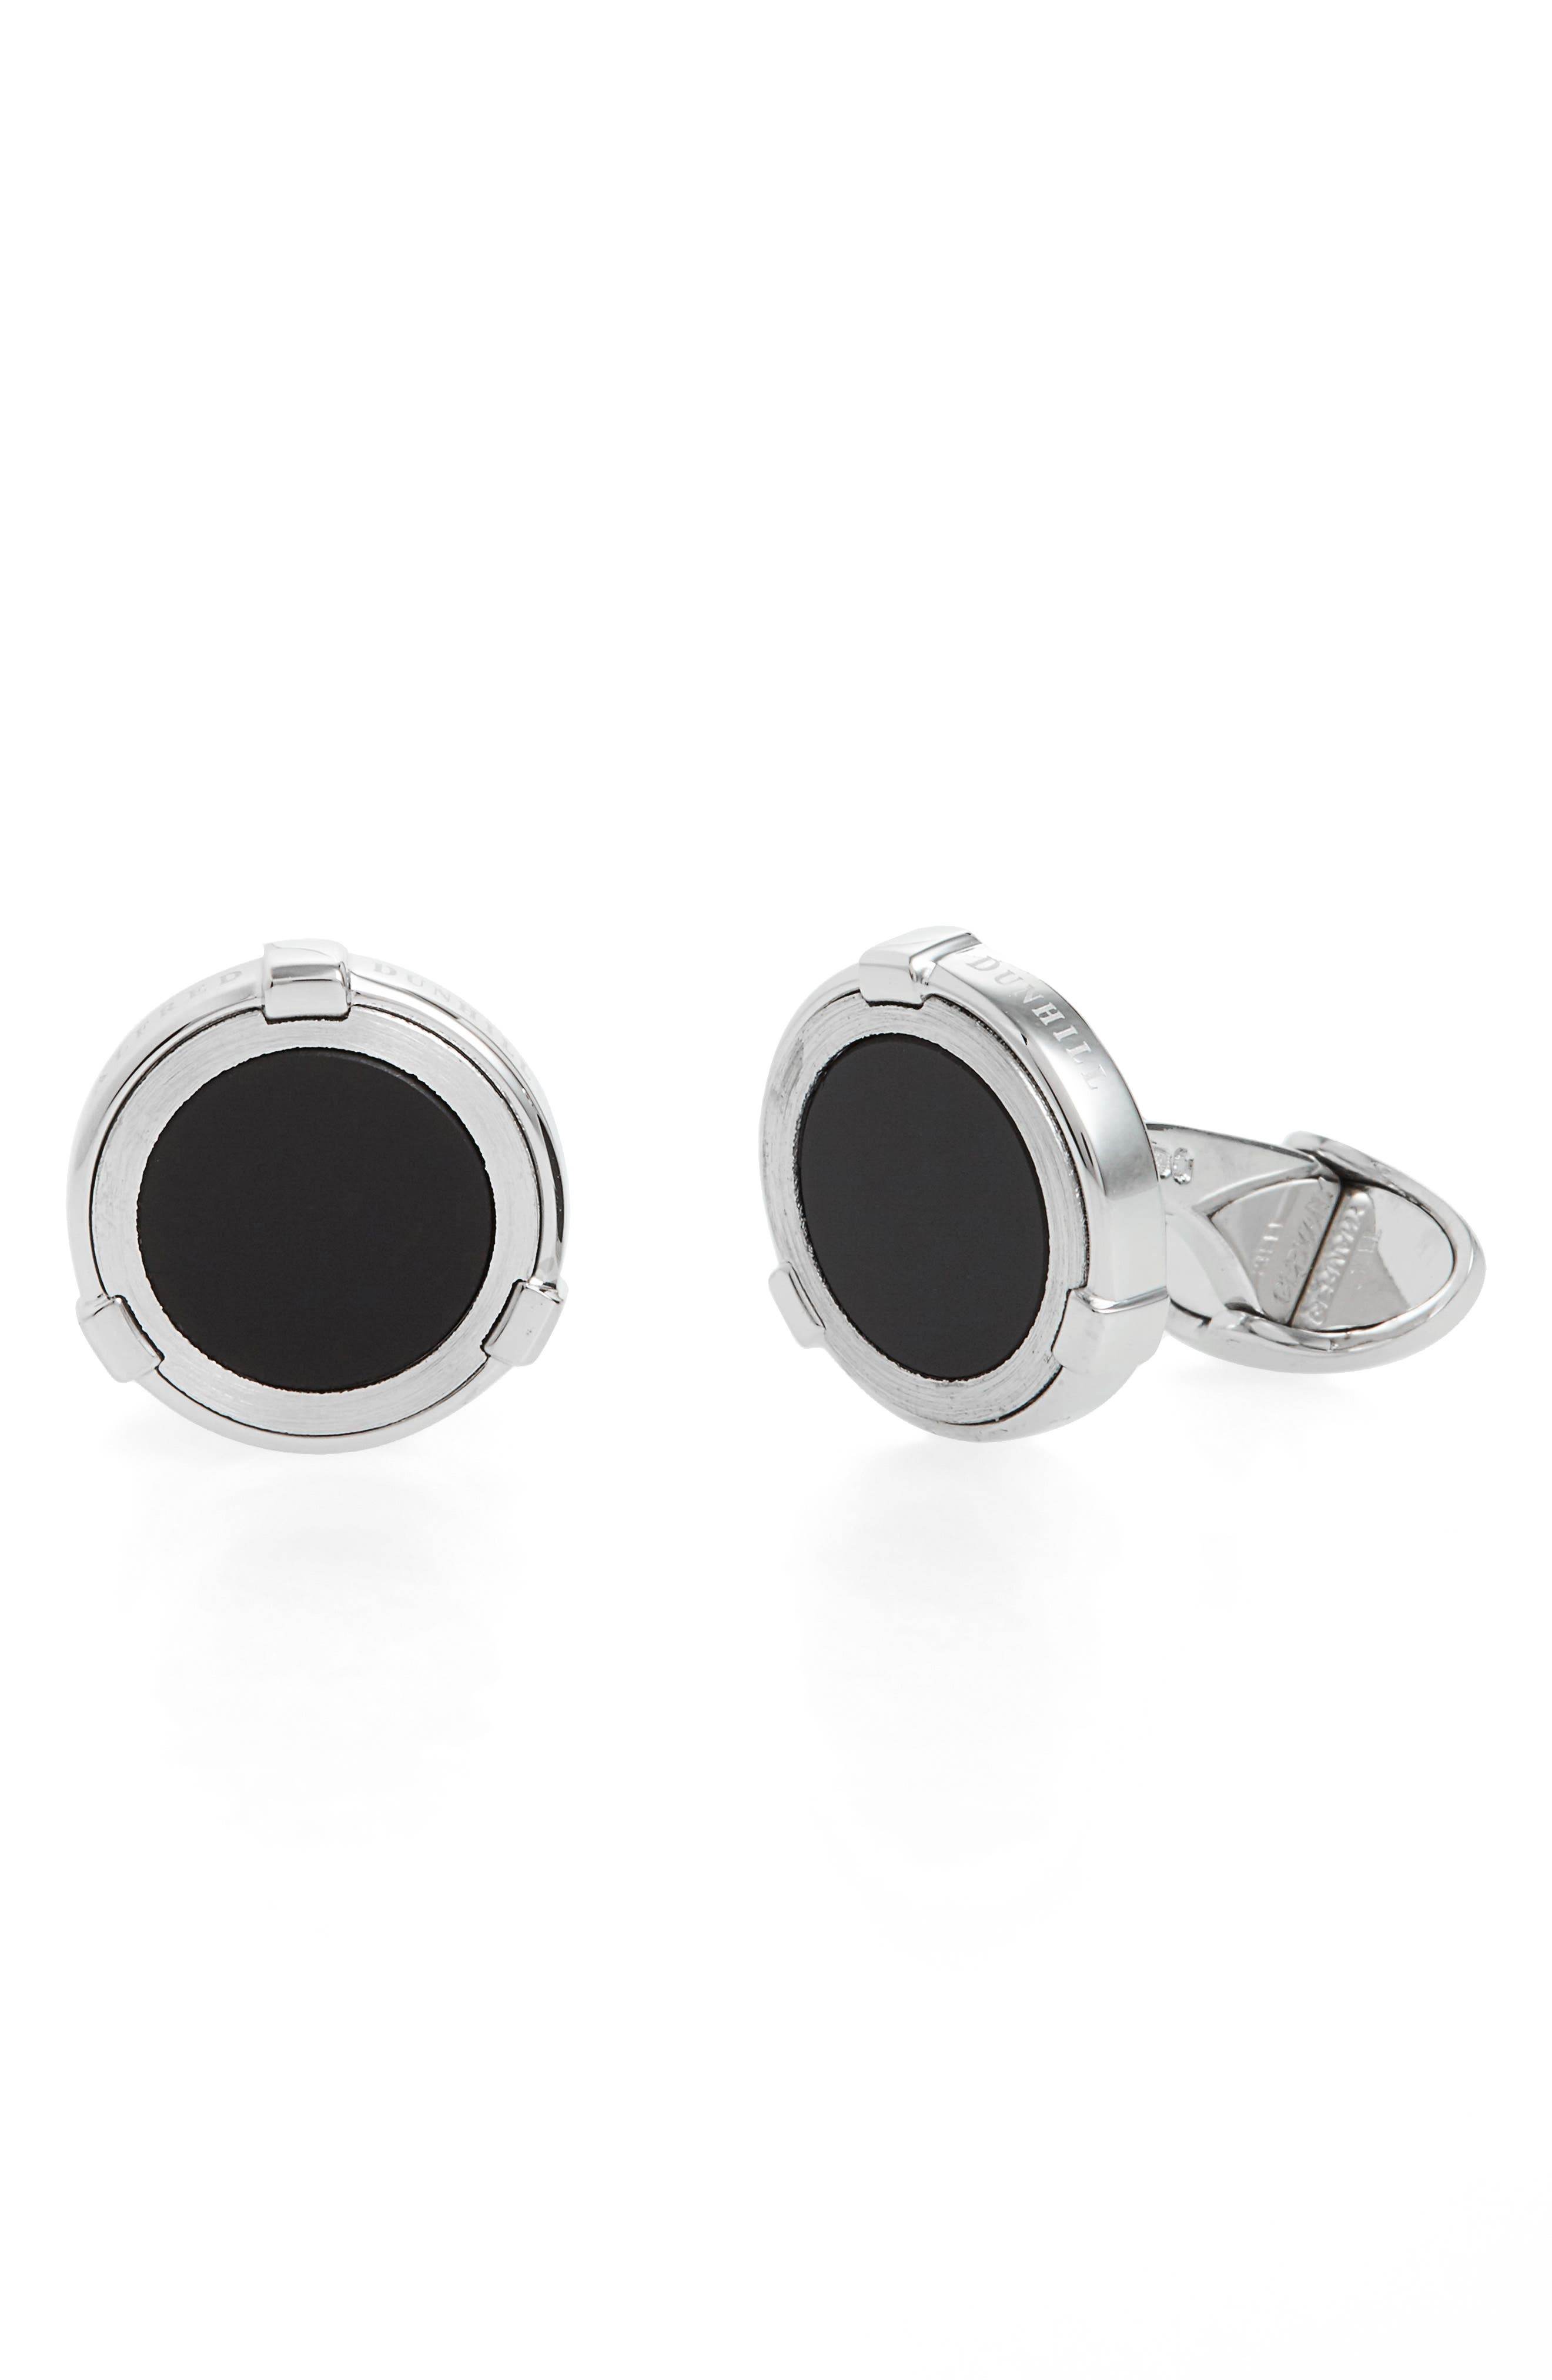 Latch Stone Cuff Links,                             Main thumbnail 1, color,                             040